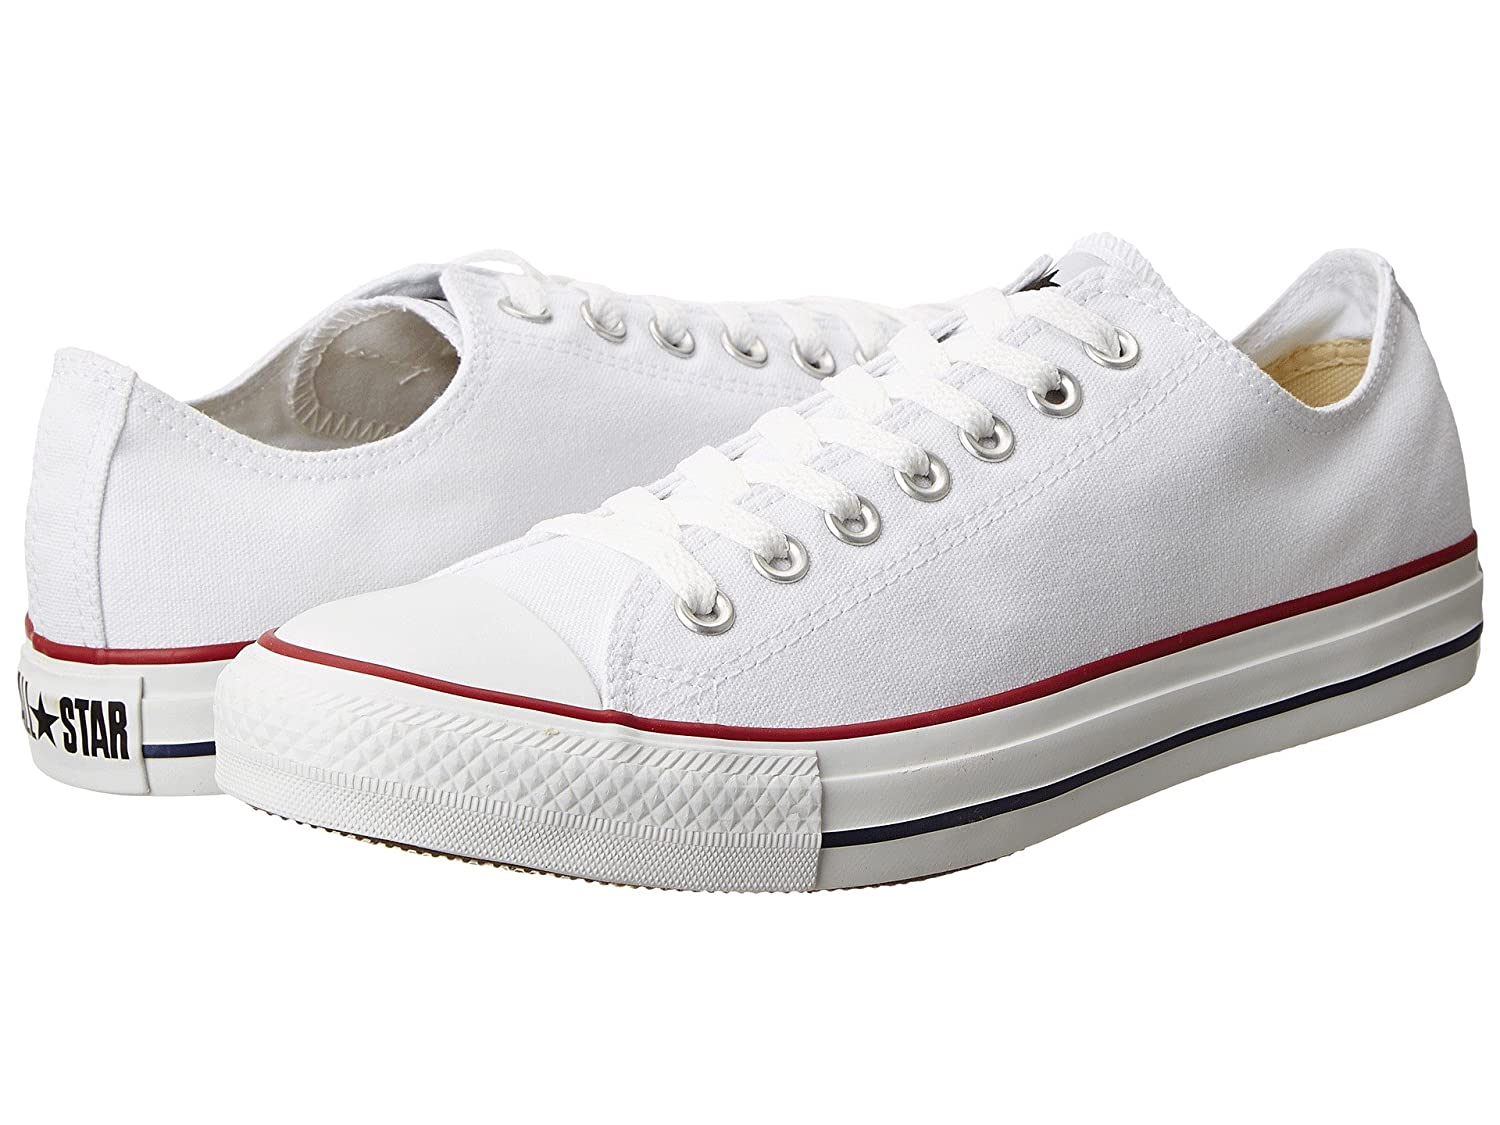 Converse Unisex Chuck Taylor All Star Ox Basketball Shoe B077PRLYD1 9.5 B(M) US Women / 7.5 D(M) US Men|Opt. White